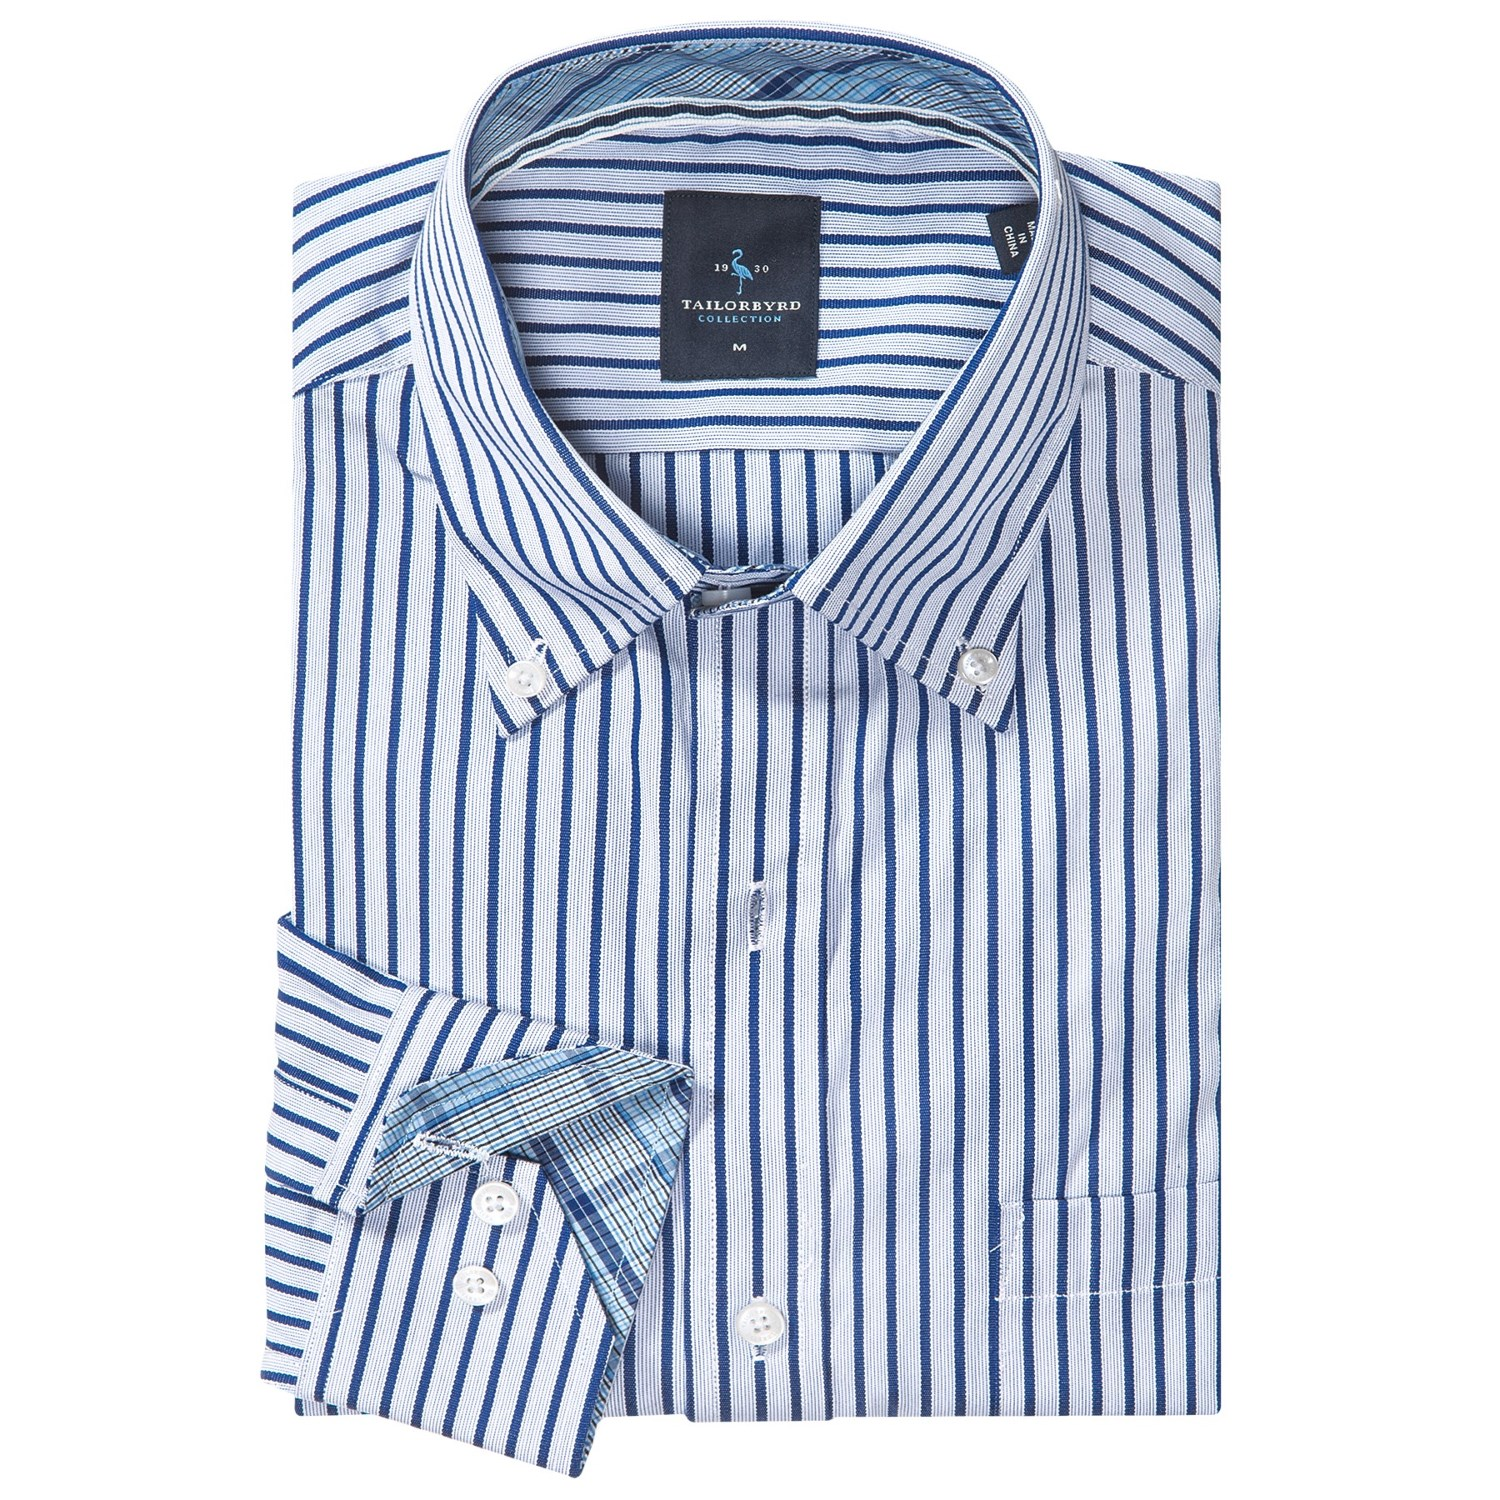 Document moved for Button up collared sport shirts